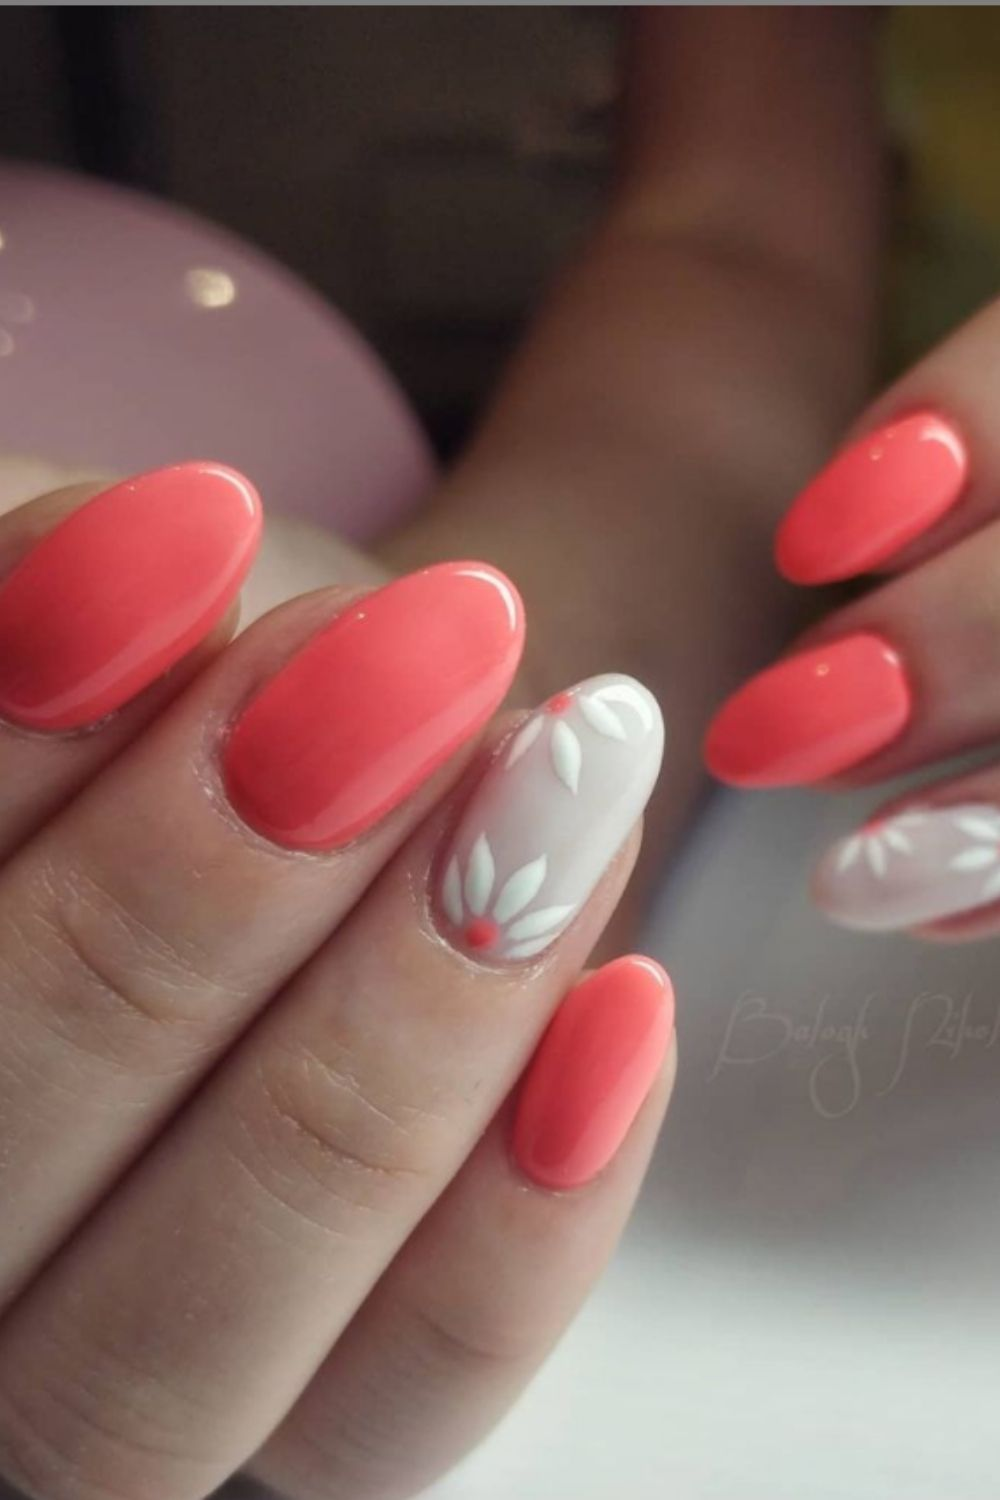 White and red oval nails art designs for summer nails